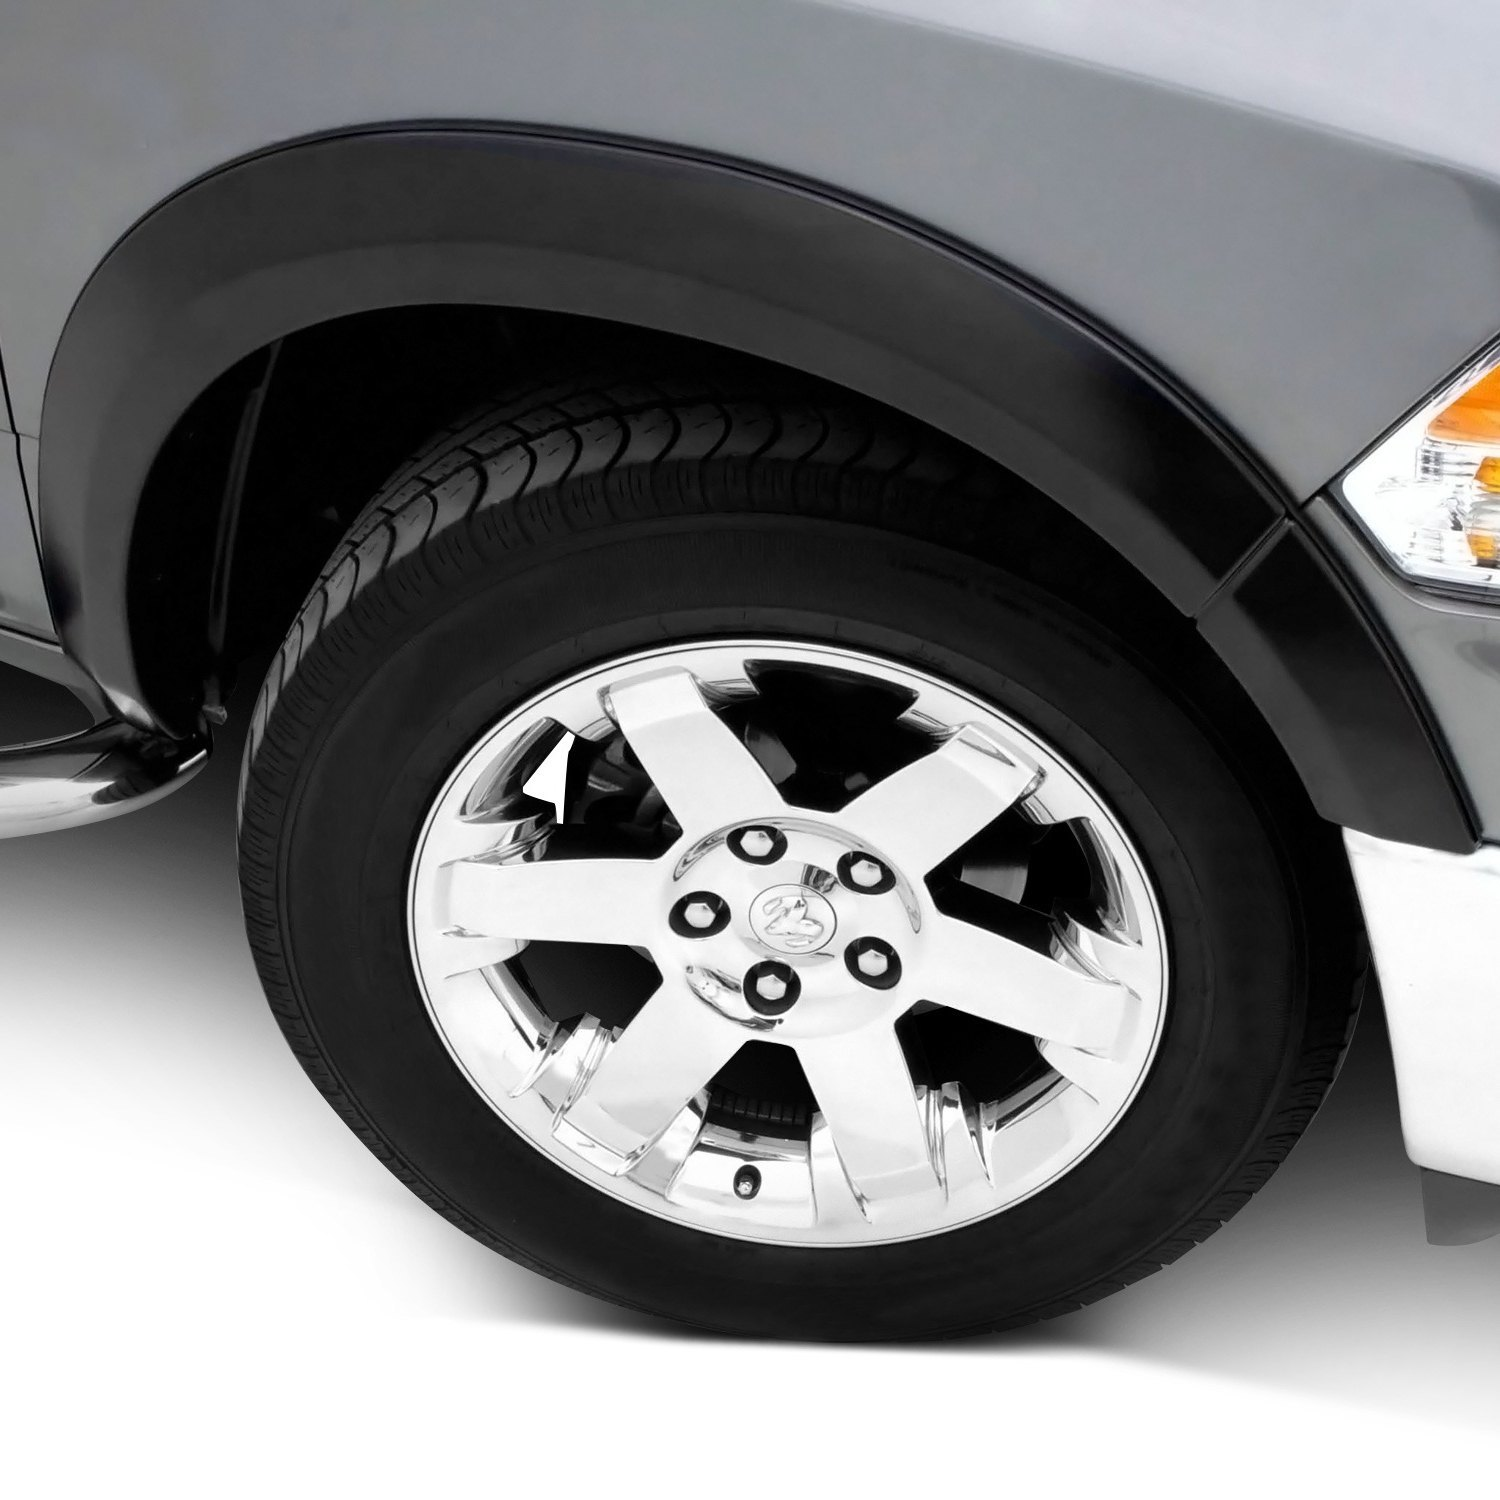 Lund Ford F 150 Styleside 2004 Elite Series Sx Sport Style Fender Smooth Black Front Flares